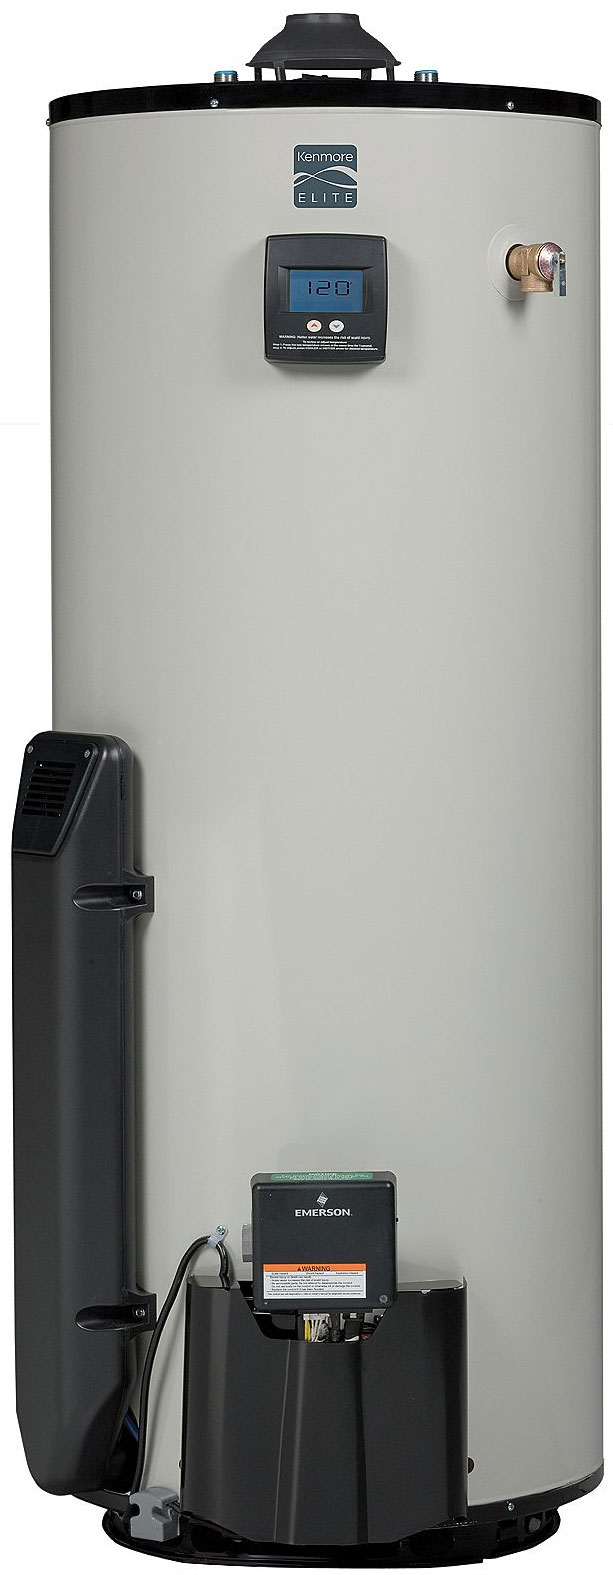 Water heater reviews larger image 2 review kenmore elite gas water heater ccuart Images